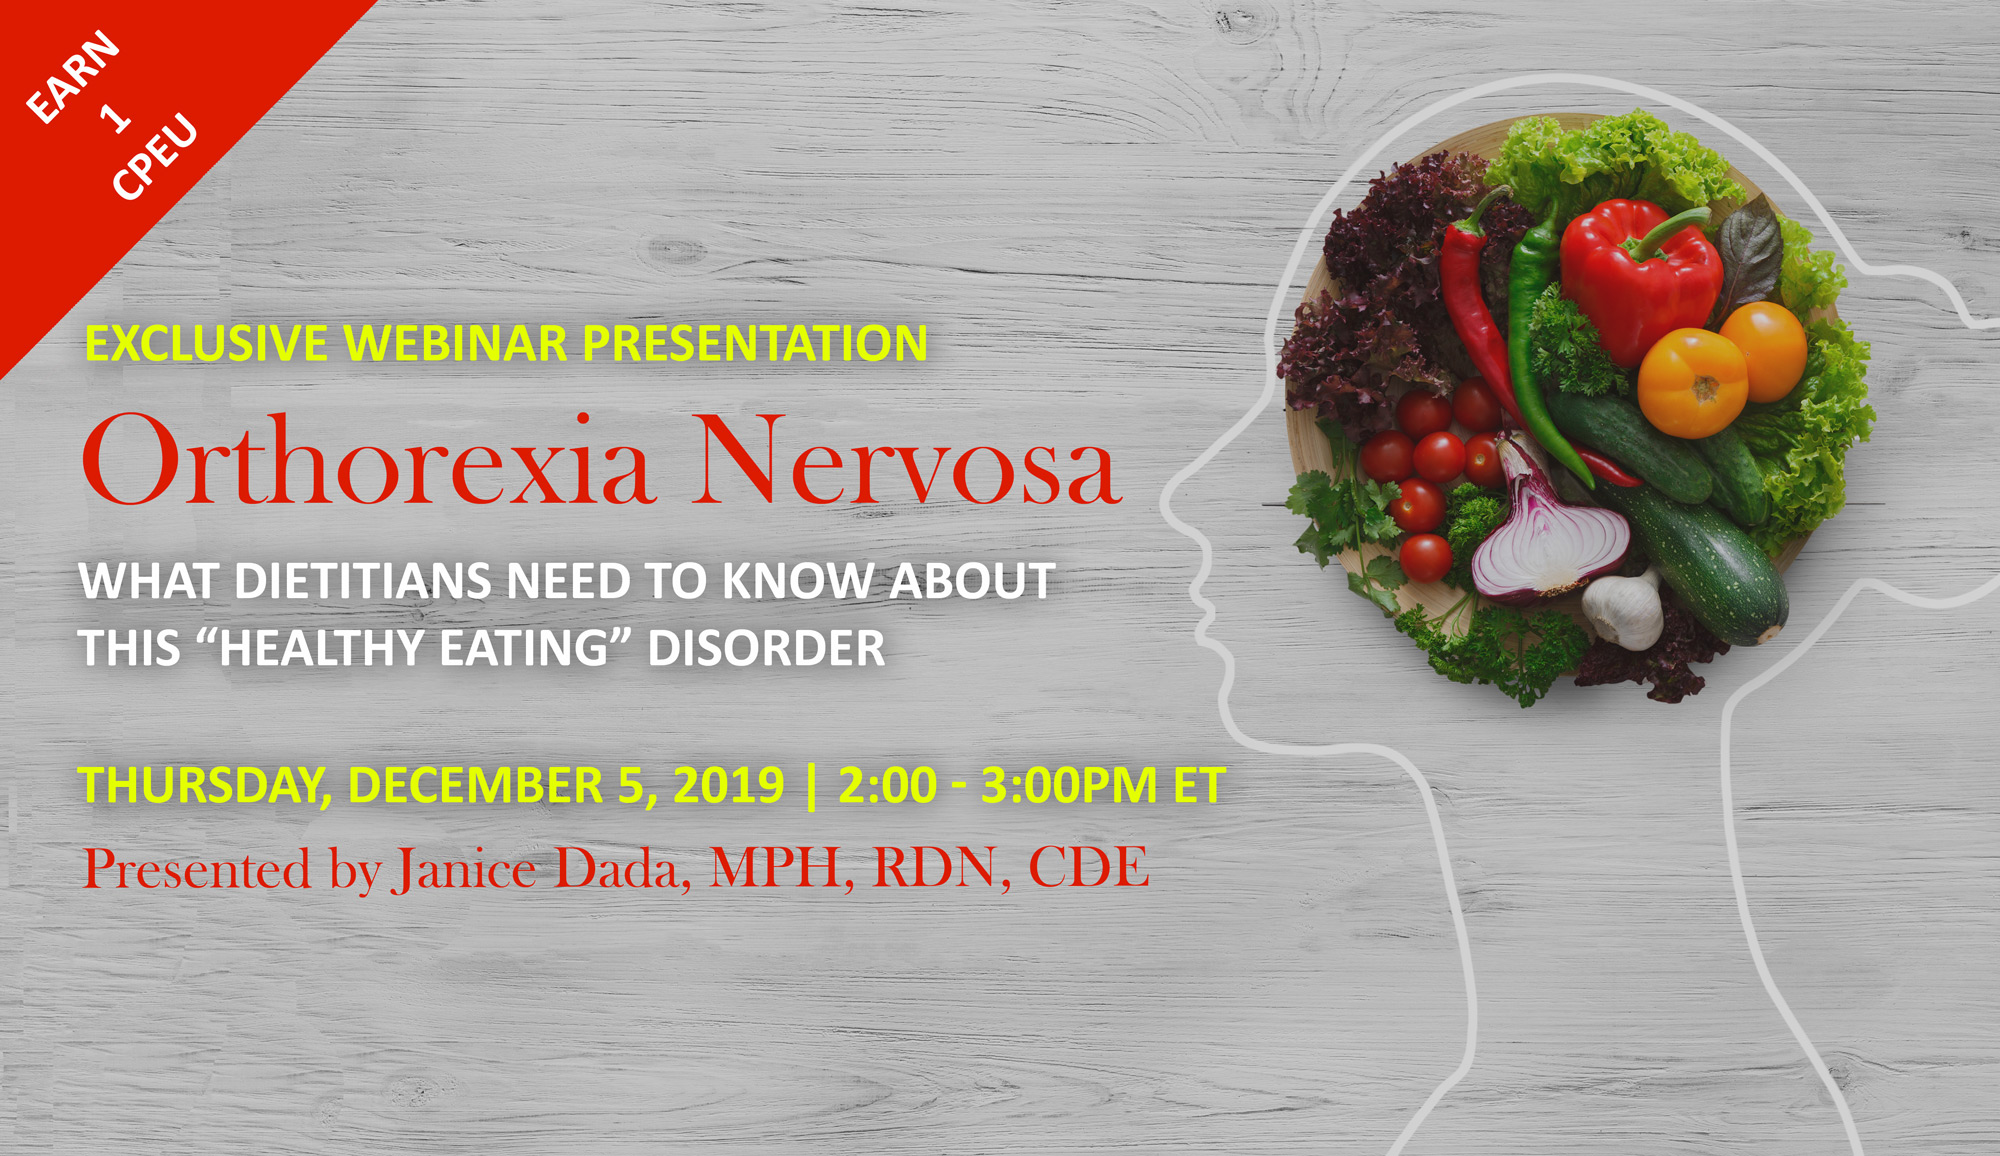 Exclusive Webinar Presentation | Orthorexia Nervosa: What Dietitians Need to Know About this Healthy Eating Disorder | Thursday, December 5, 2019 | 2:00-3:00 PM ET | Presented by Janice Dada, MPH, RDN, CDE